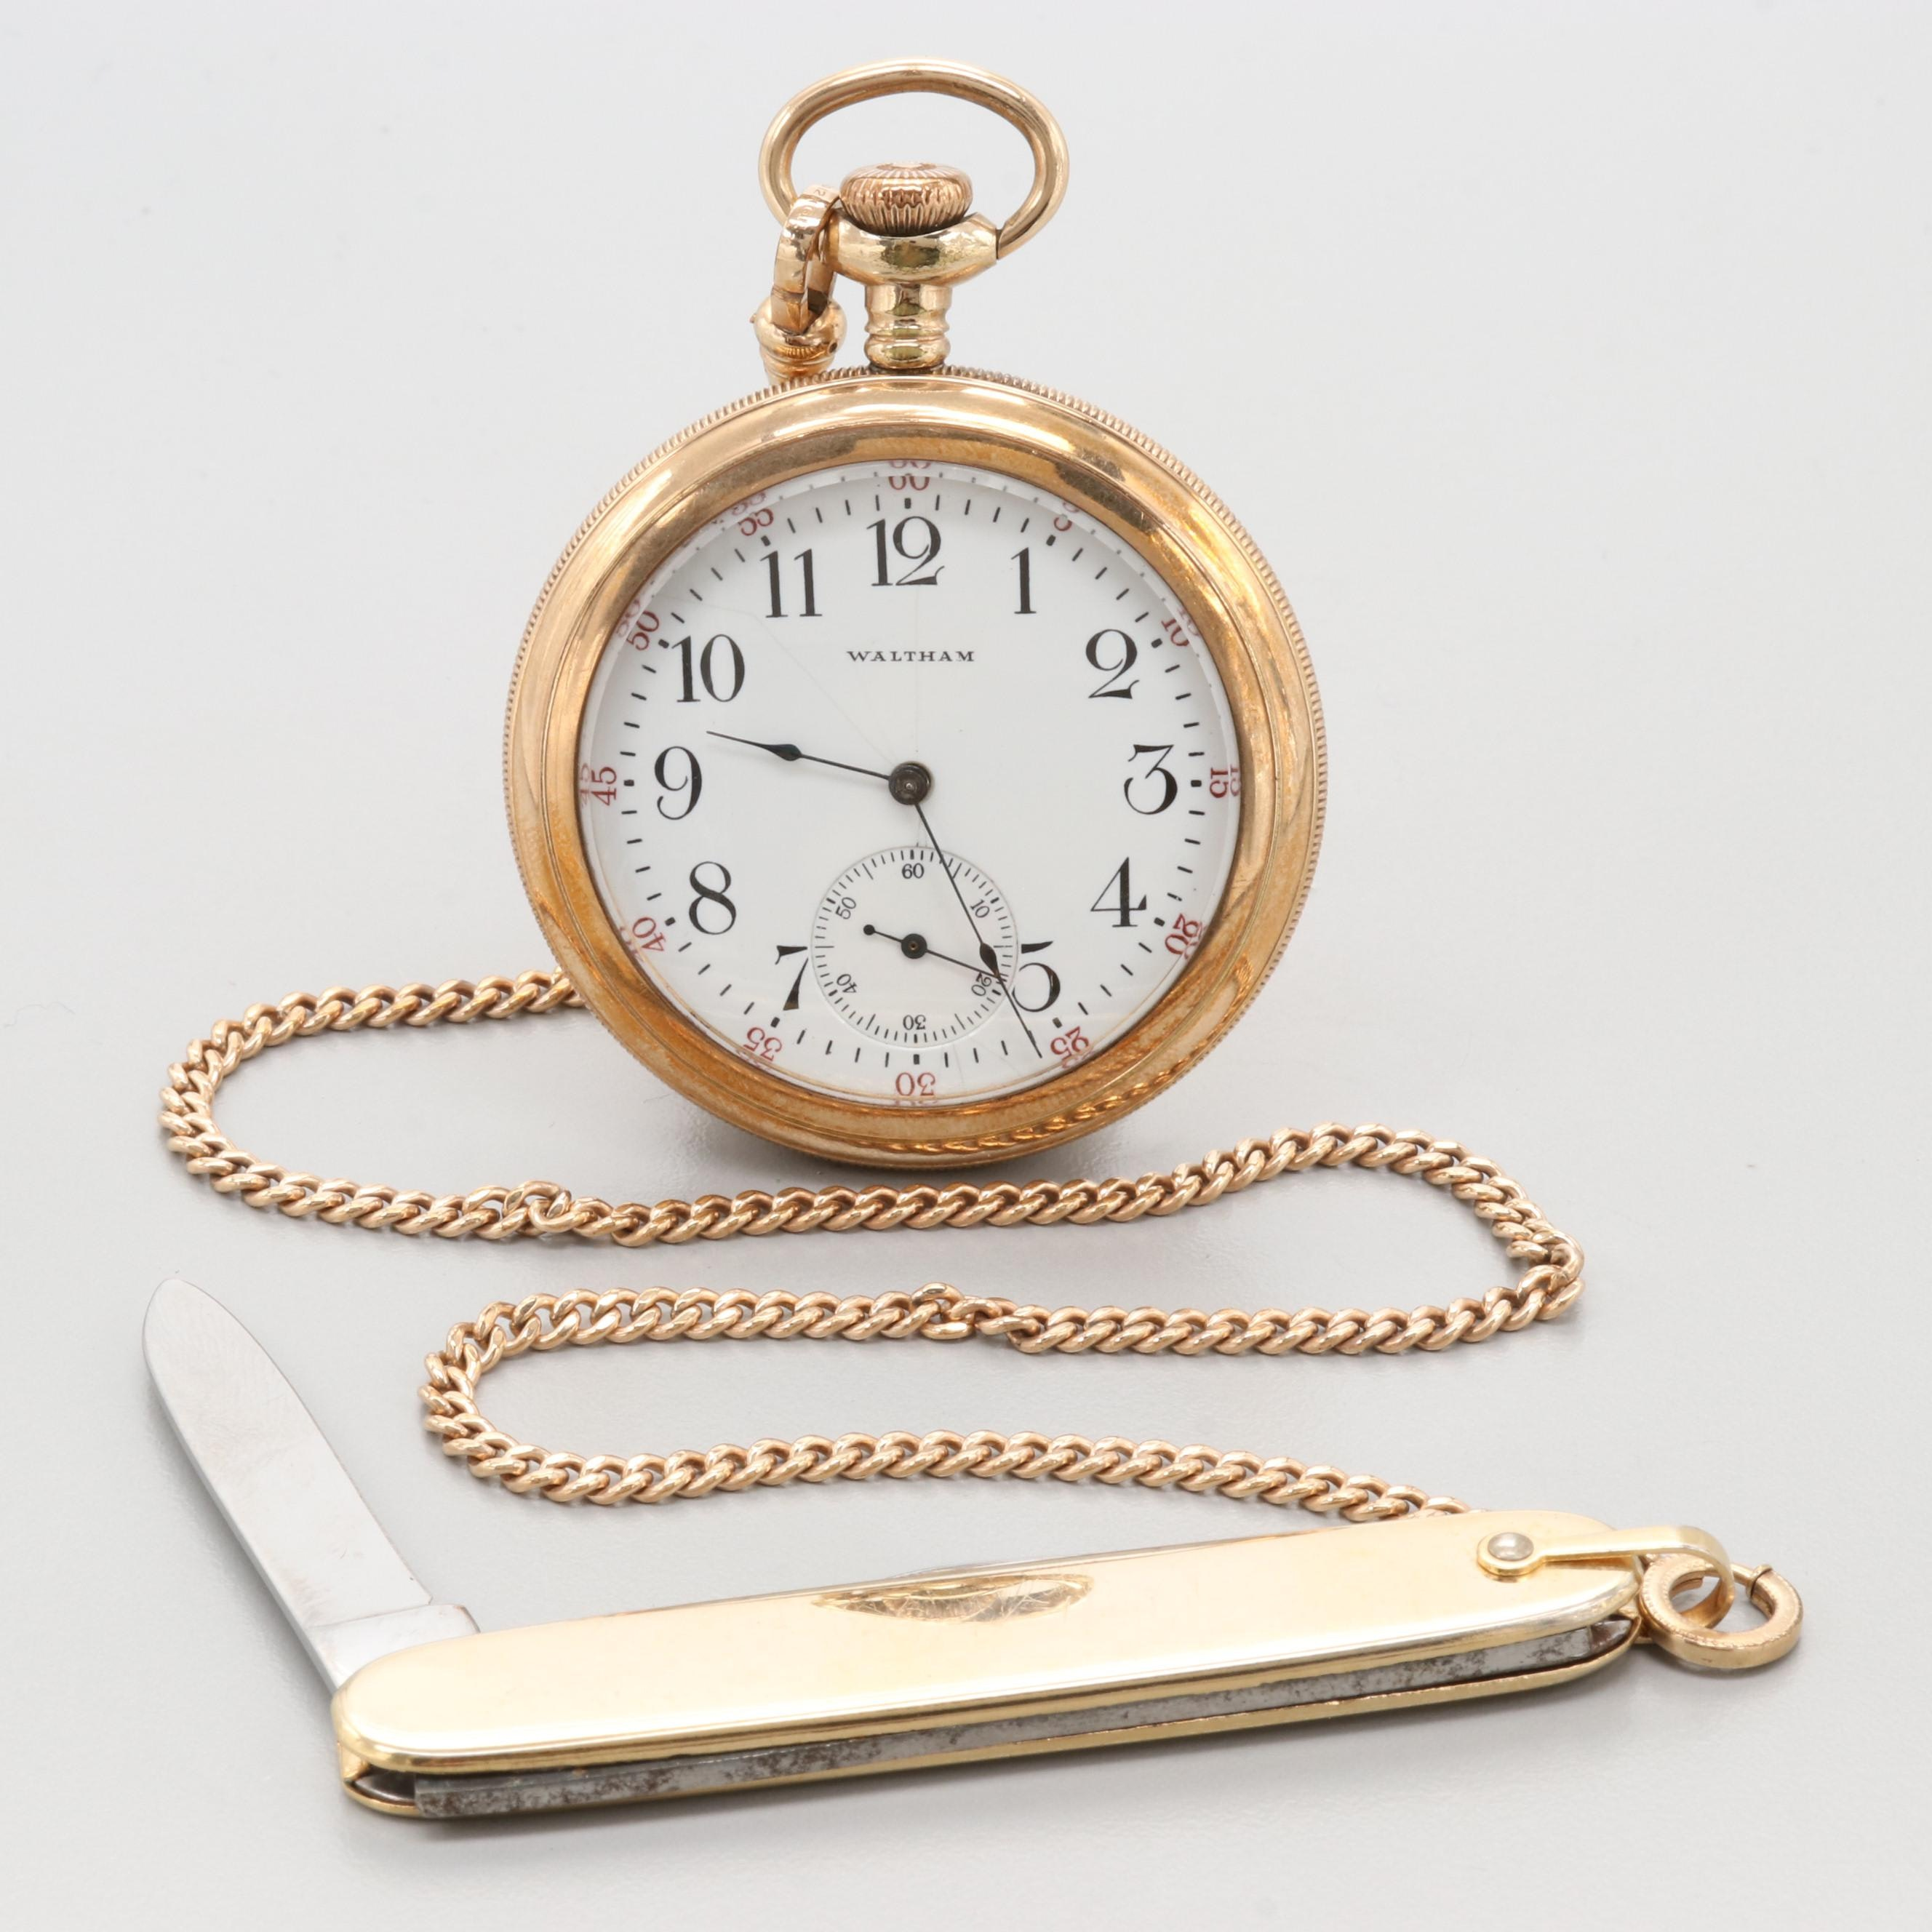 Waltham Gold Filled Pocket Watch With Pocket Knife Fob Chain 1907